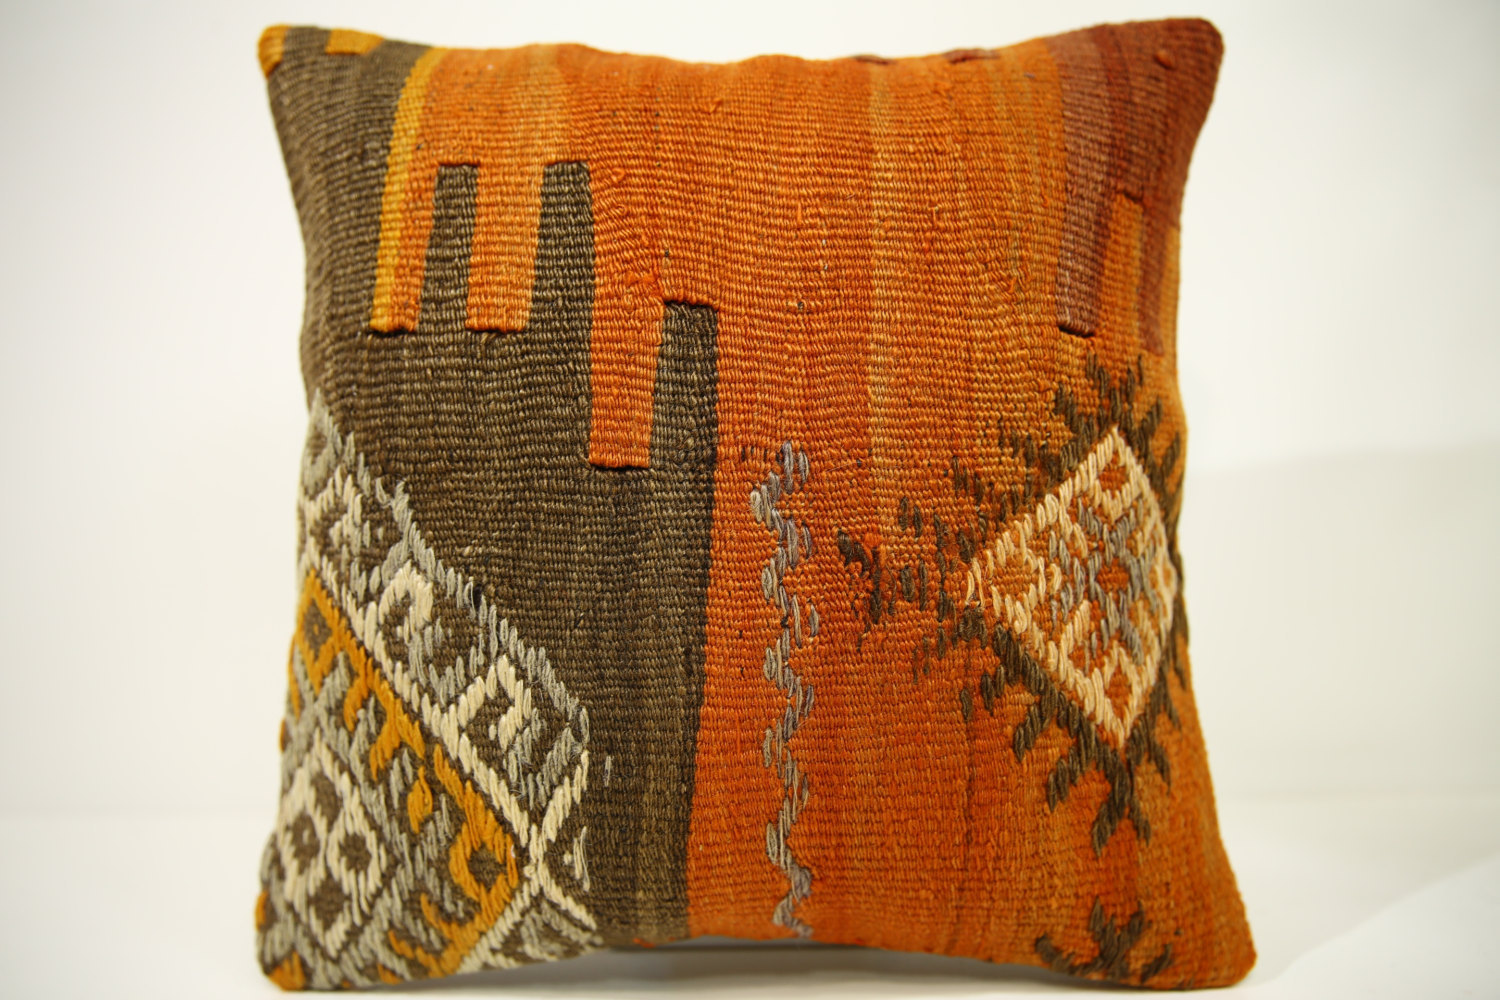 Kilim Pillows | 14x14 | Kelim pillows | 1412 | Turkish pillows , Kilim cushion